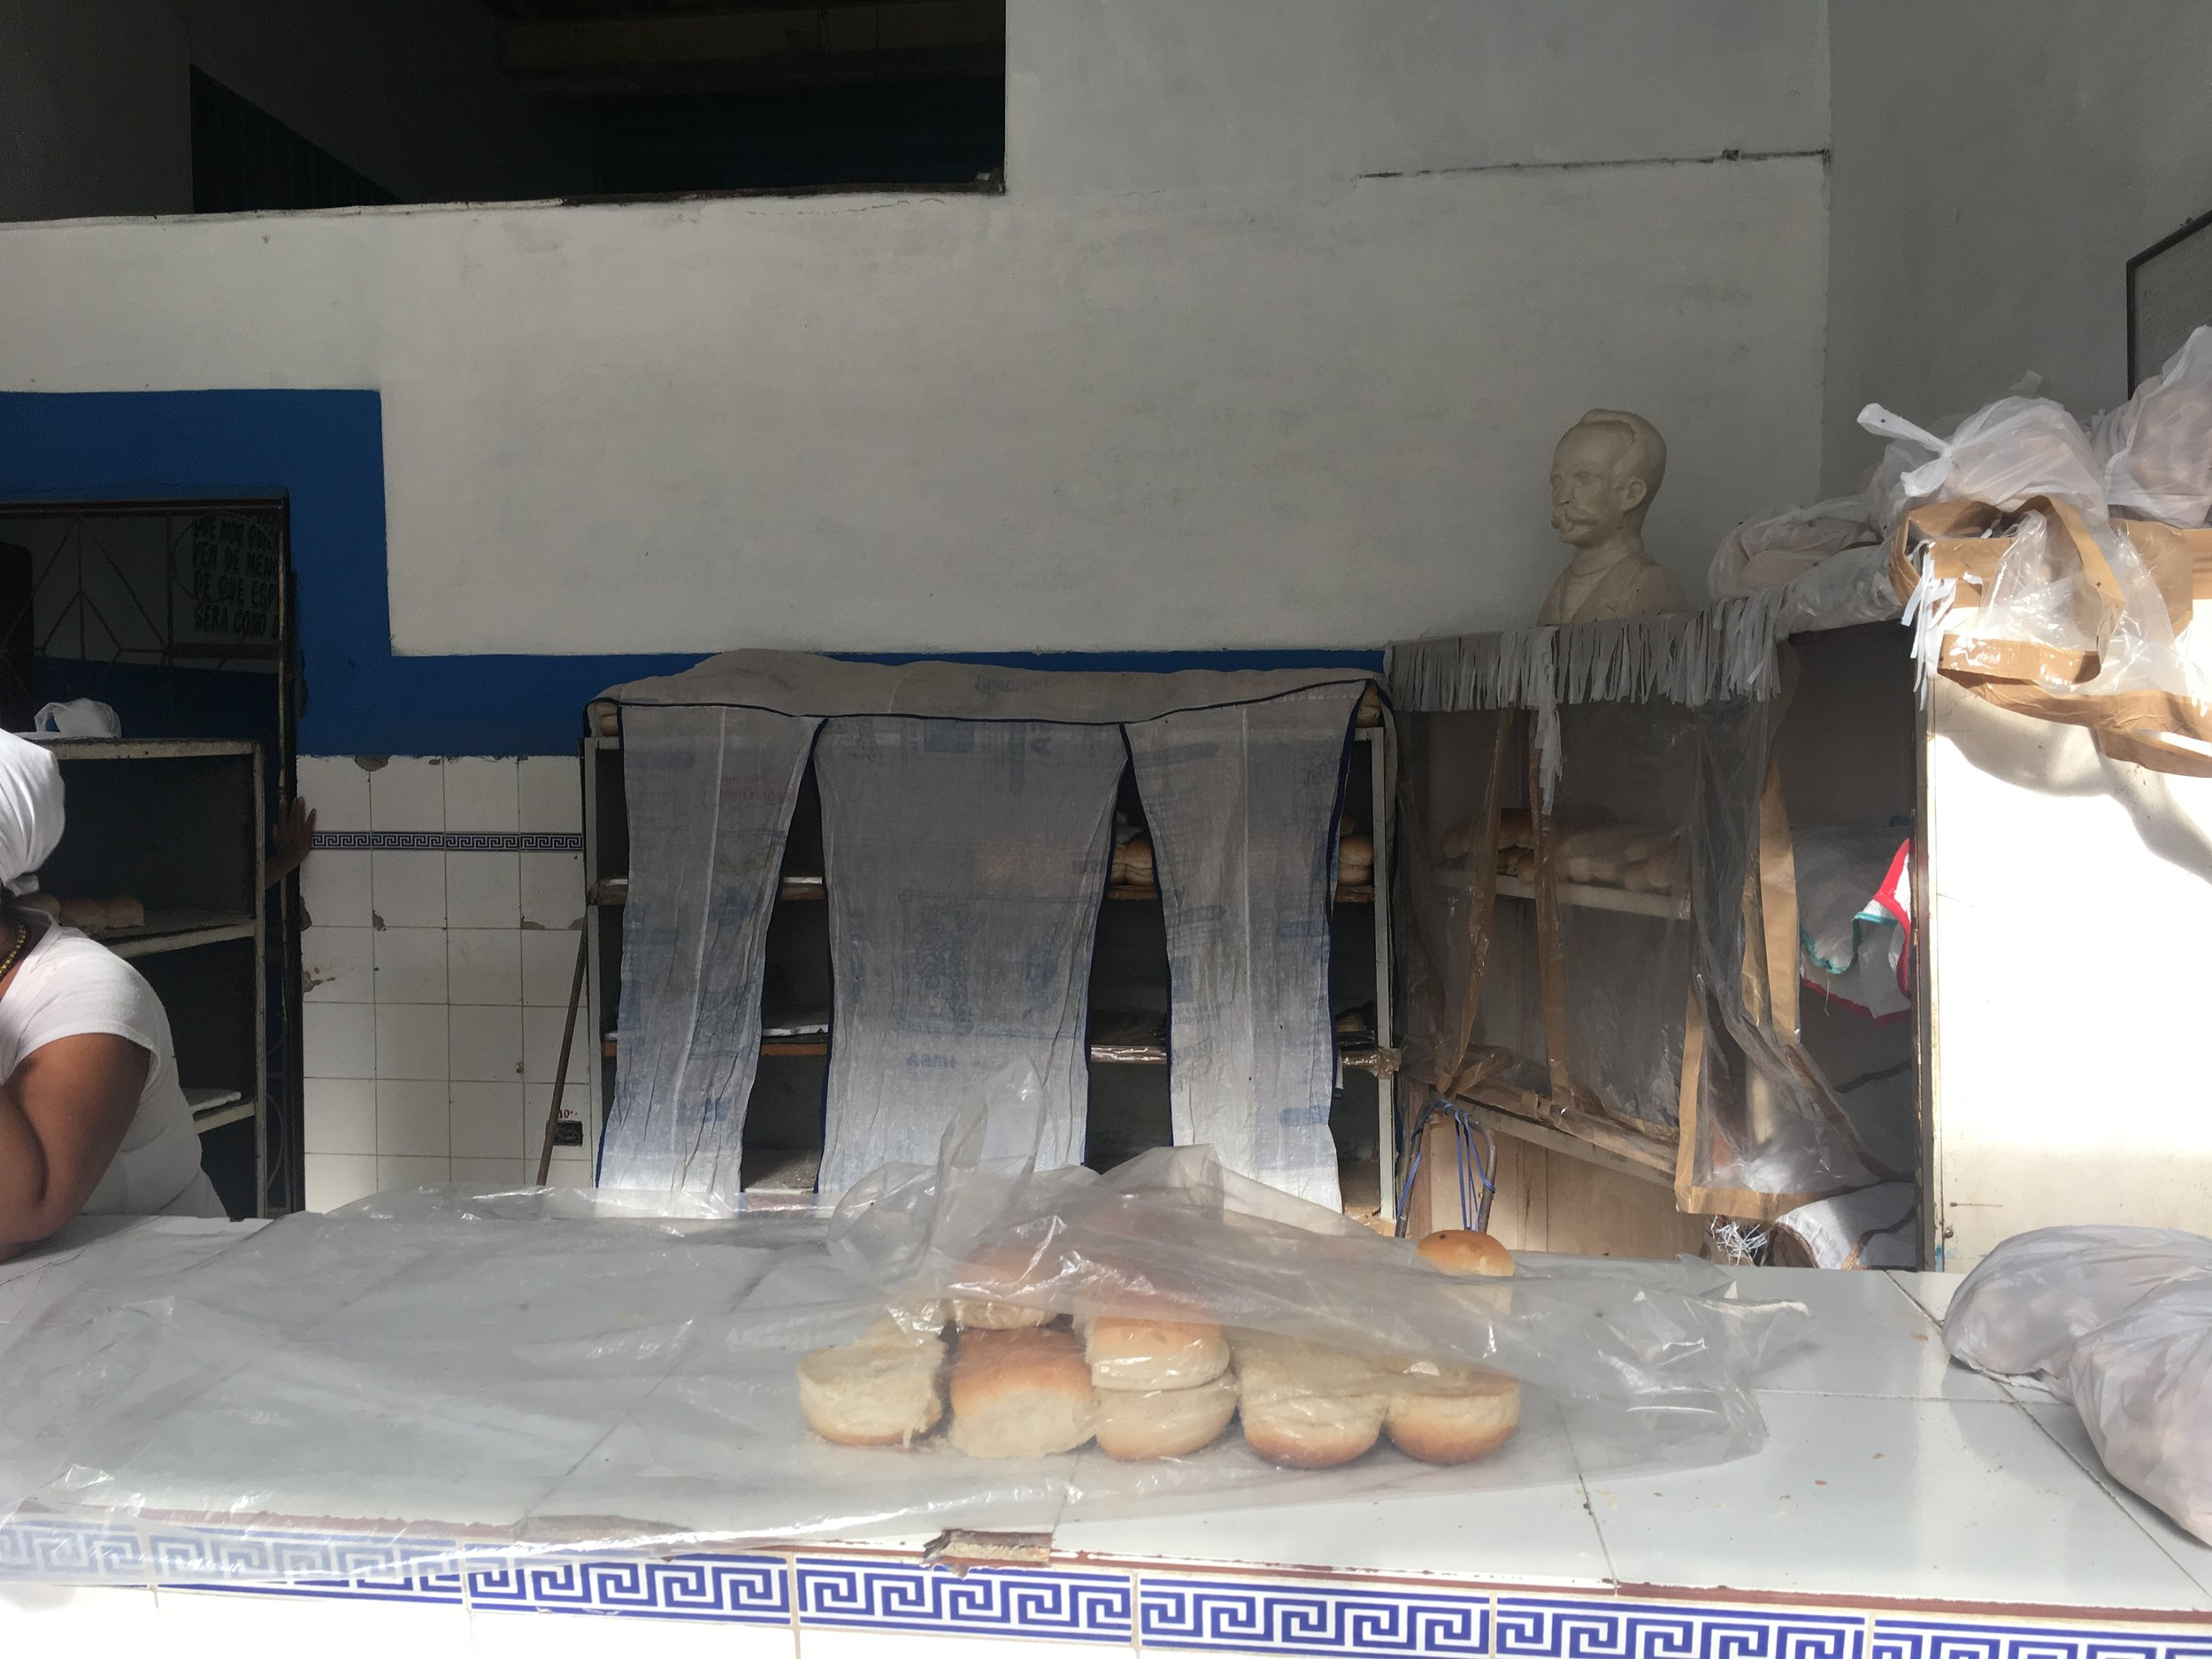 State-owned bakery in havana